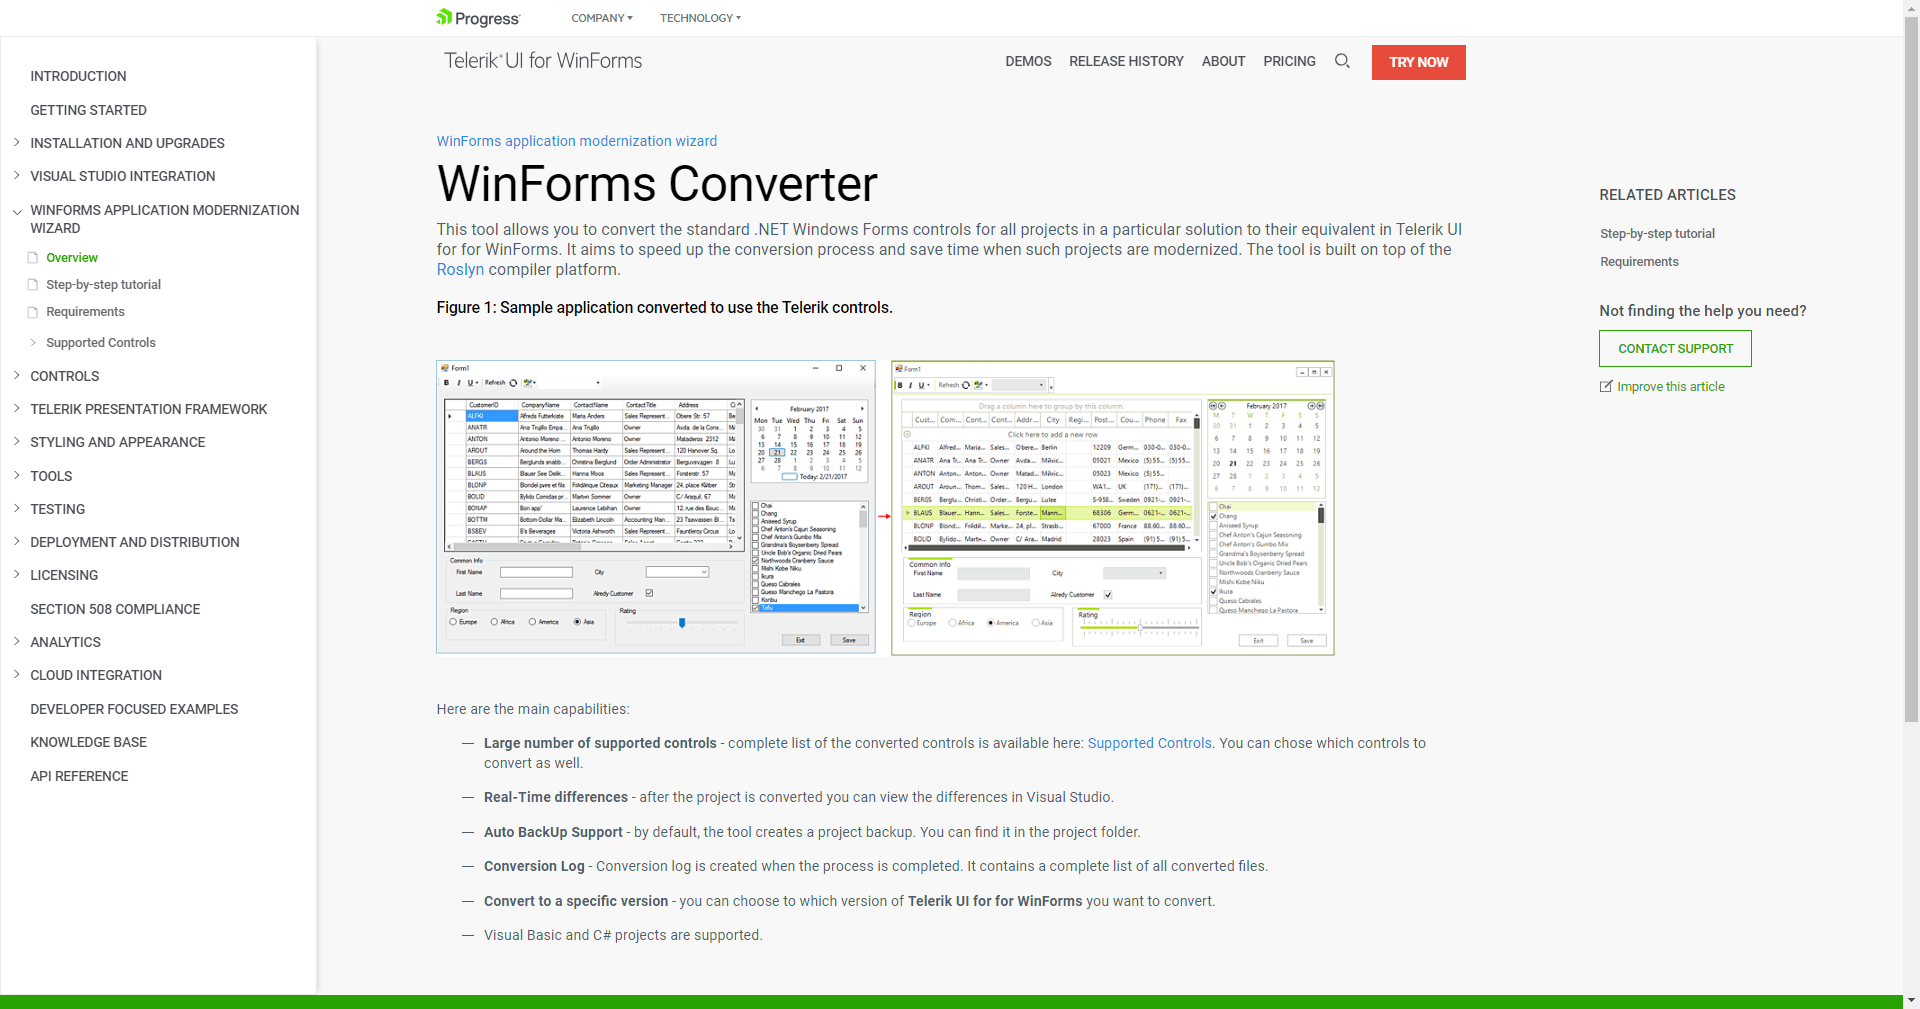 winforms_docs_001